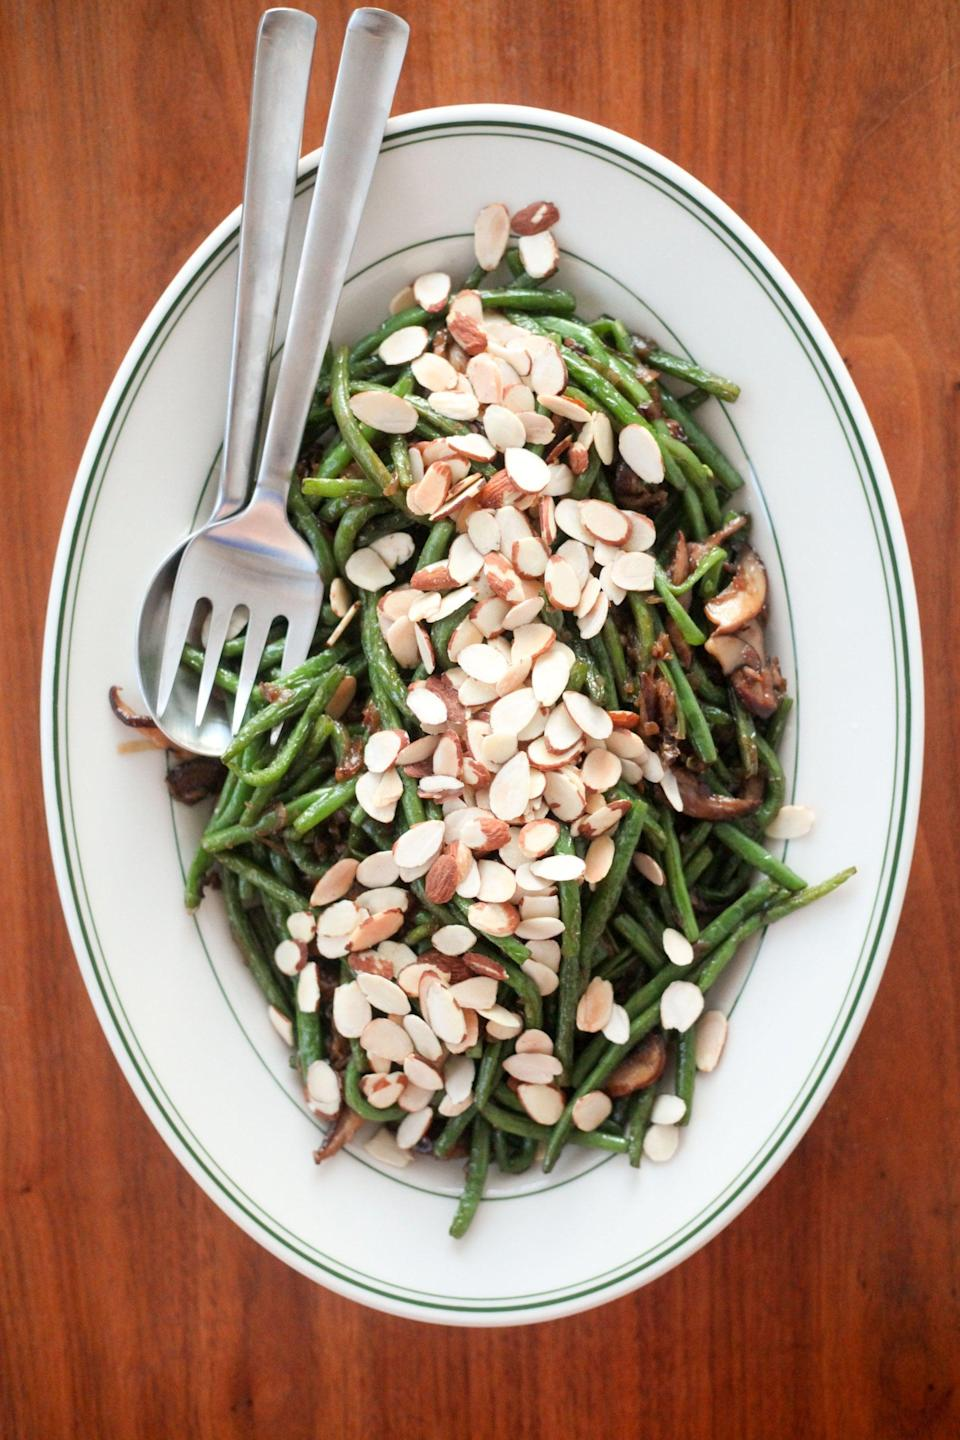 "<p>Caramelized onions, sautéed mushrooms, a splash of sherry vinegar, and a toasted almond topping give unexpected flavor and texture to these simple blistered green beans. Make these for an easy, dairy-free green you can feel good about eating. </p> <p><strong>Get the recipe:</strong> <a href=""https://www.popsugar.com/food/Blistered-Green-Beans-Mushrooms-Caramelized-Onions-42635901"" class=""link rapid-noclick-resp"" rel=""nofollow noopener"" target=""_blank"" data-ylk=""slk:blistered green beans with mushrooms and caramelized onions"">blistered green beans with mushrooms and caramelized onions</a></p>"